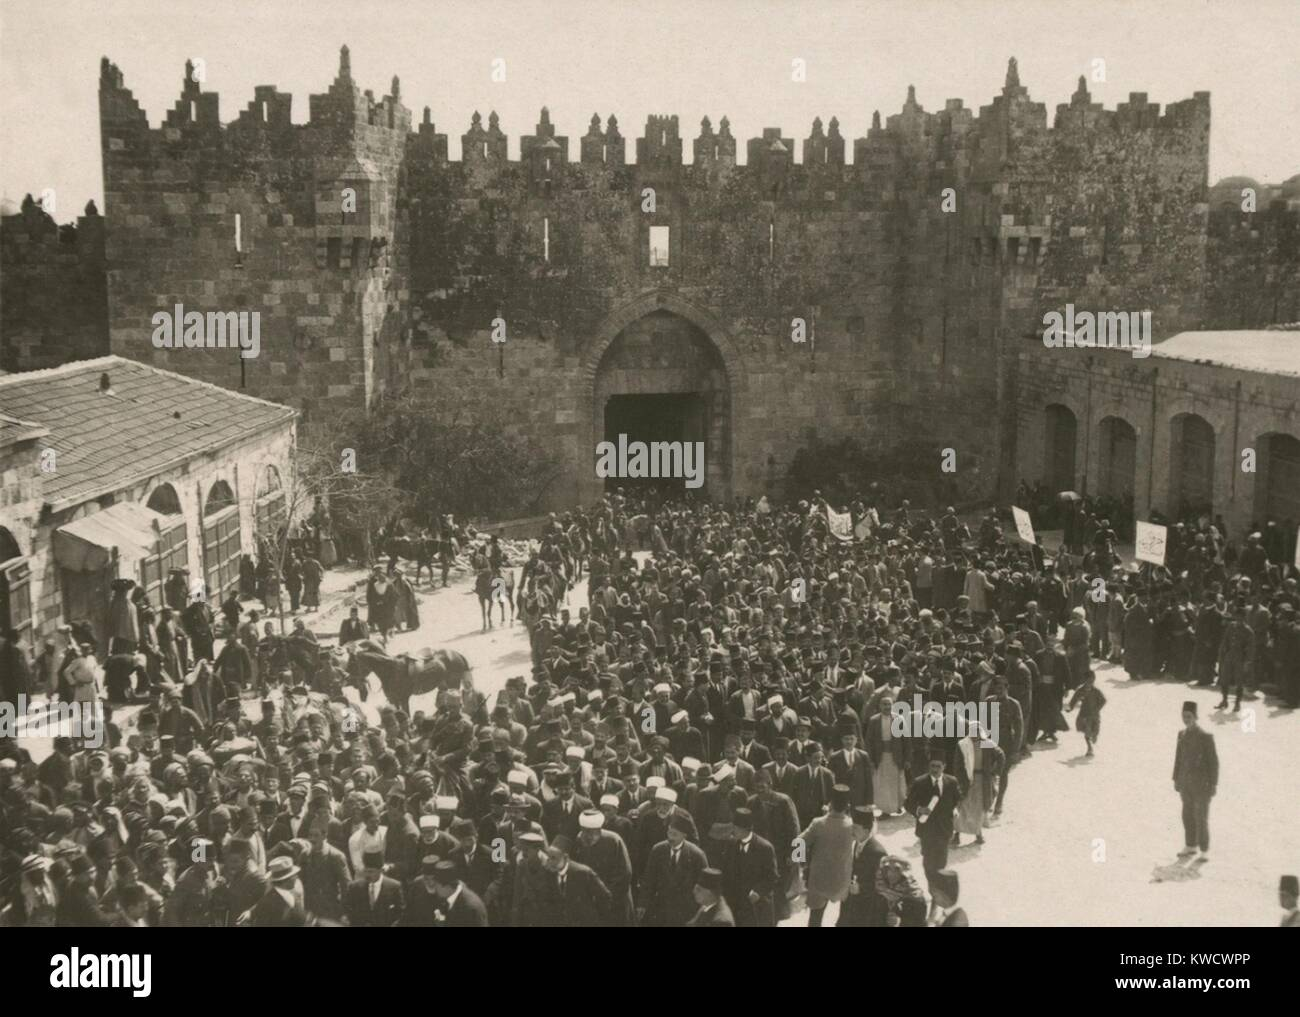 Arab anti-Zionist demonstration Damascus Jaffa Gate in Jerusalem on the March 8, 1920 (BSLOC_2017_1_191) - Stock Image